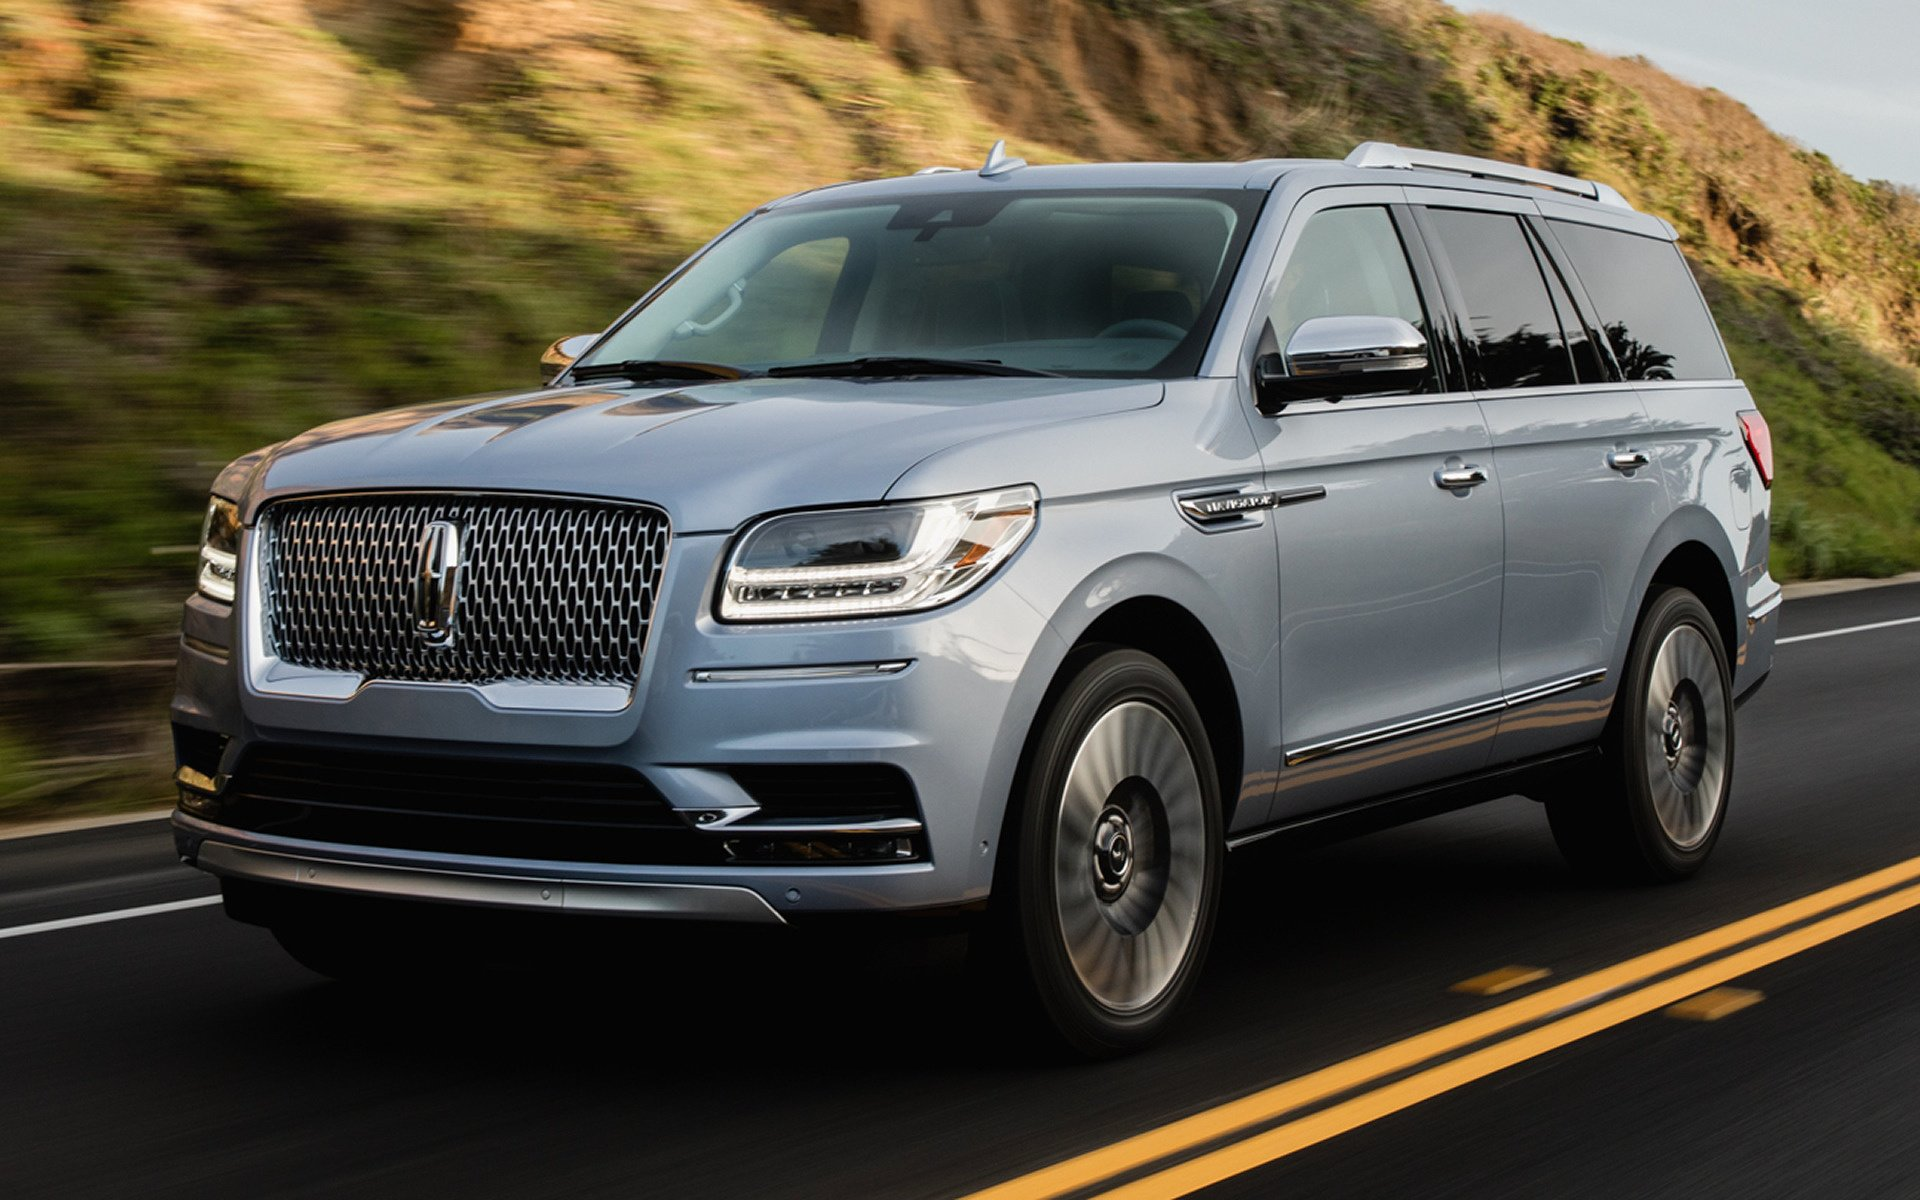 2018 Lincoln Navigator   Wallpapers and HD Images Car Pixel 1920x1200